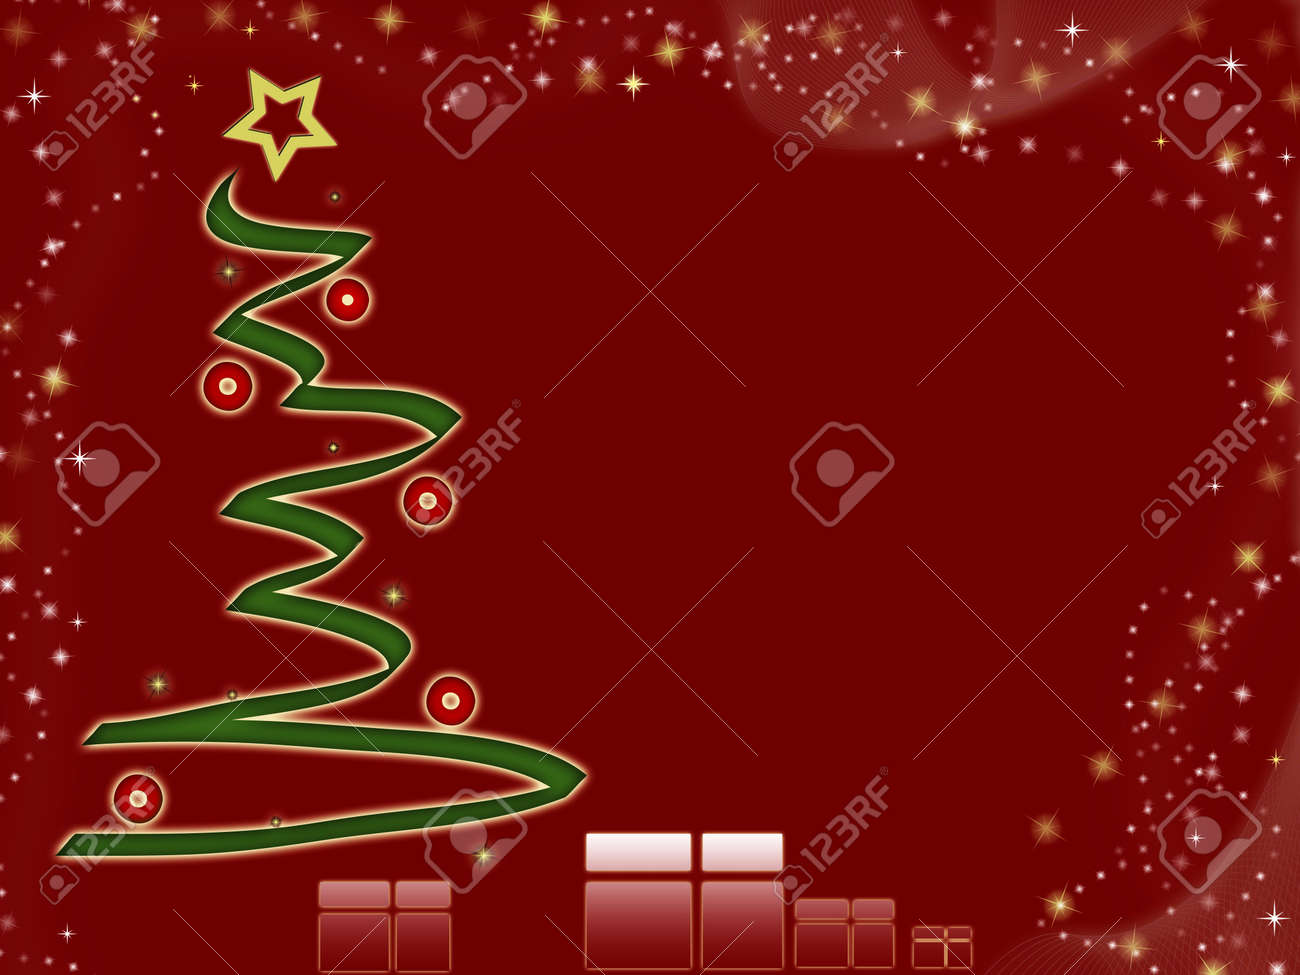 3913566 computer designed high resolution christmas background